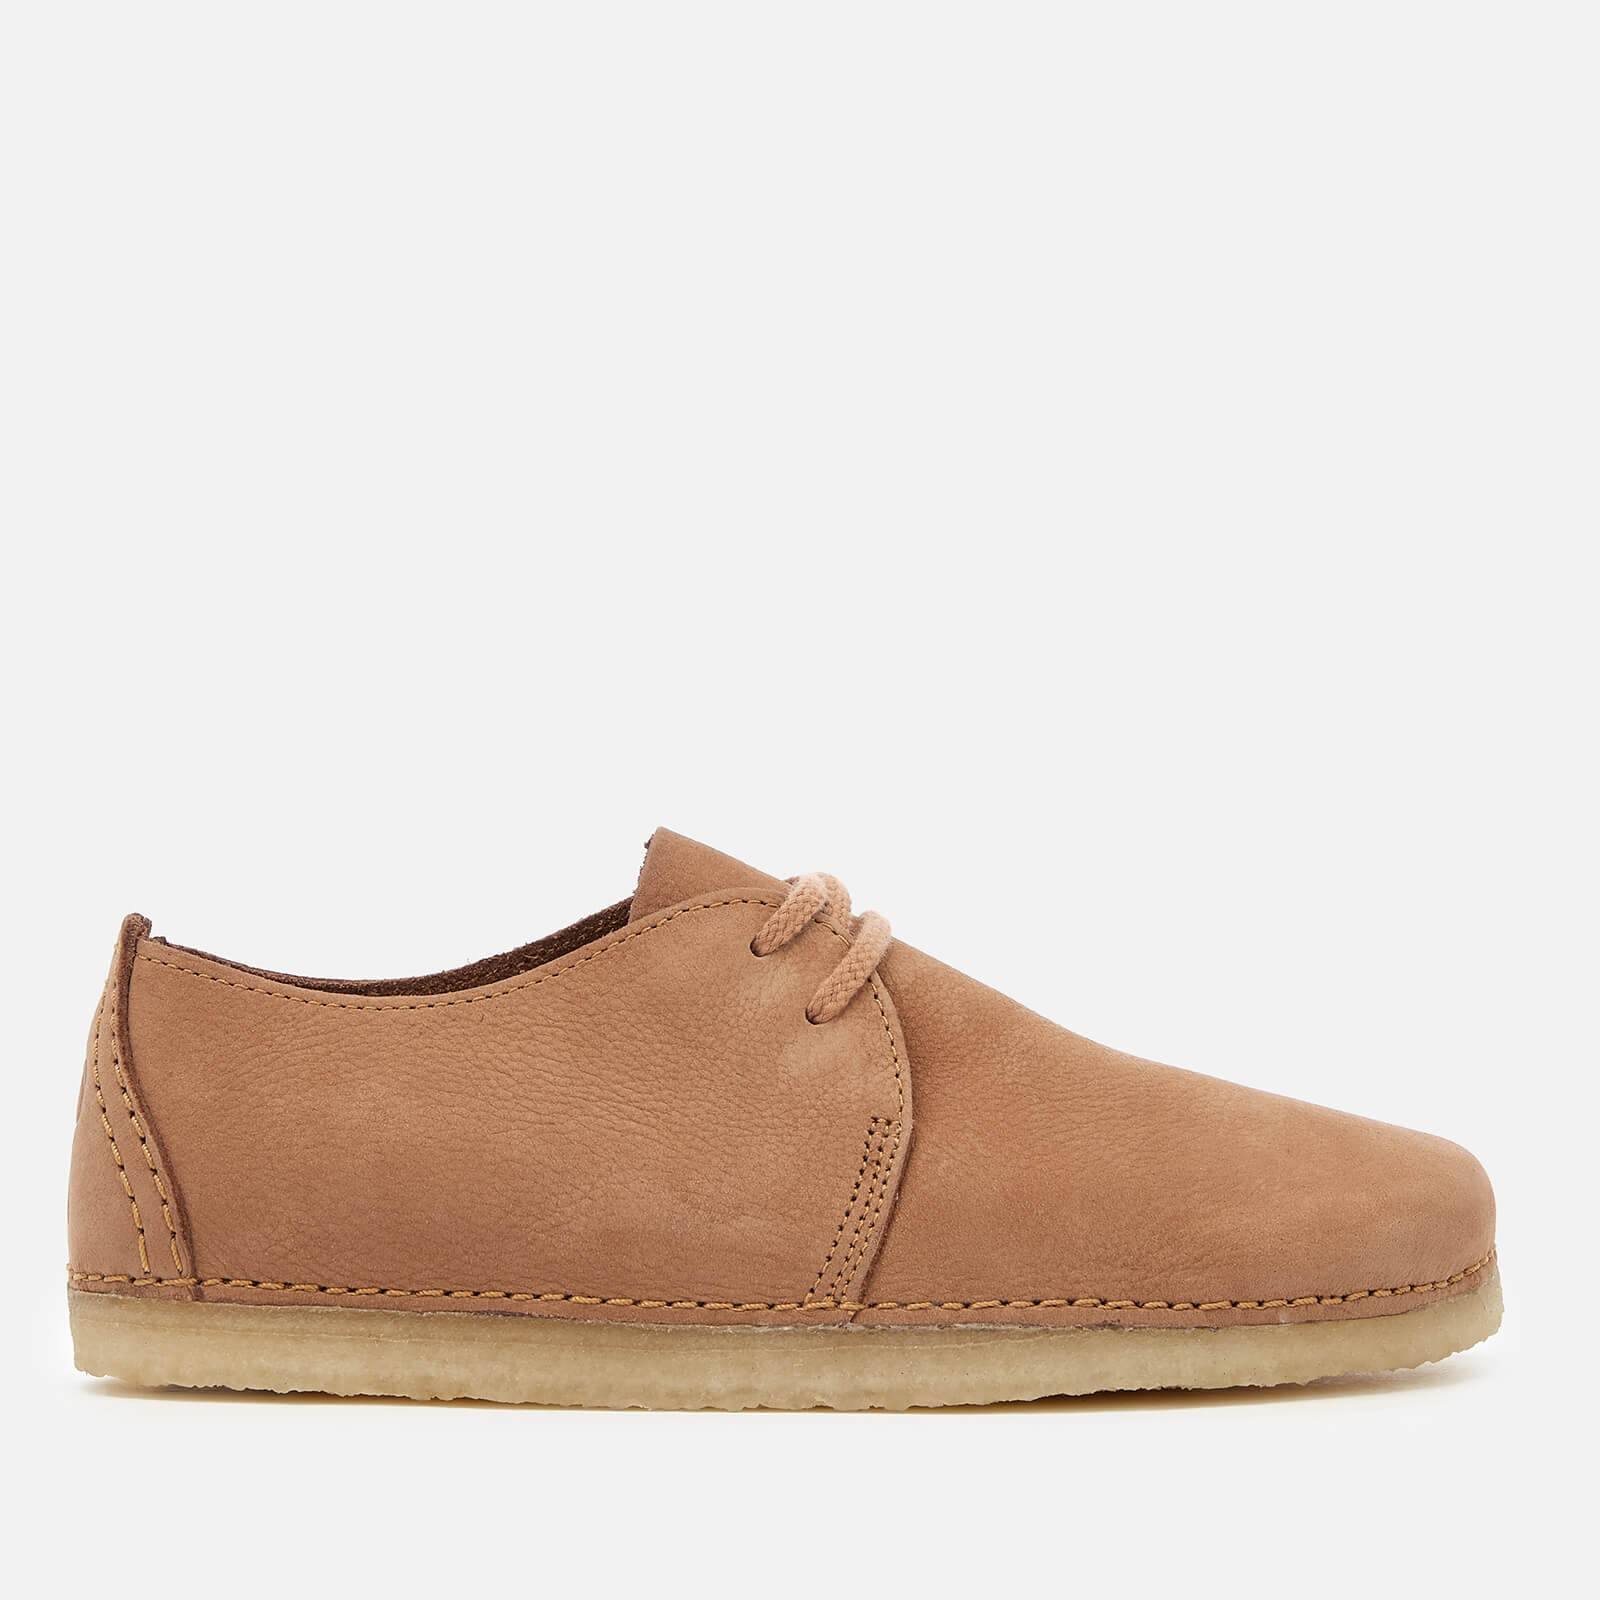 Clarks Originals Women's Ashton Nubuck Lace Up Shoes - Light Tan - UK 4 - Tan